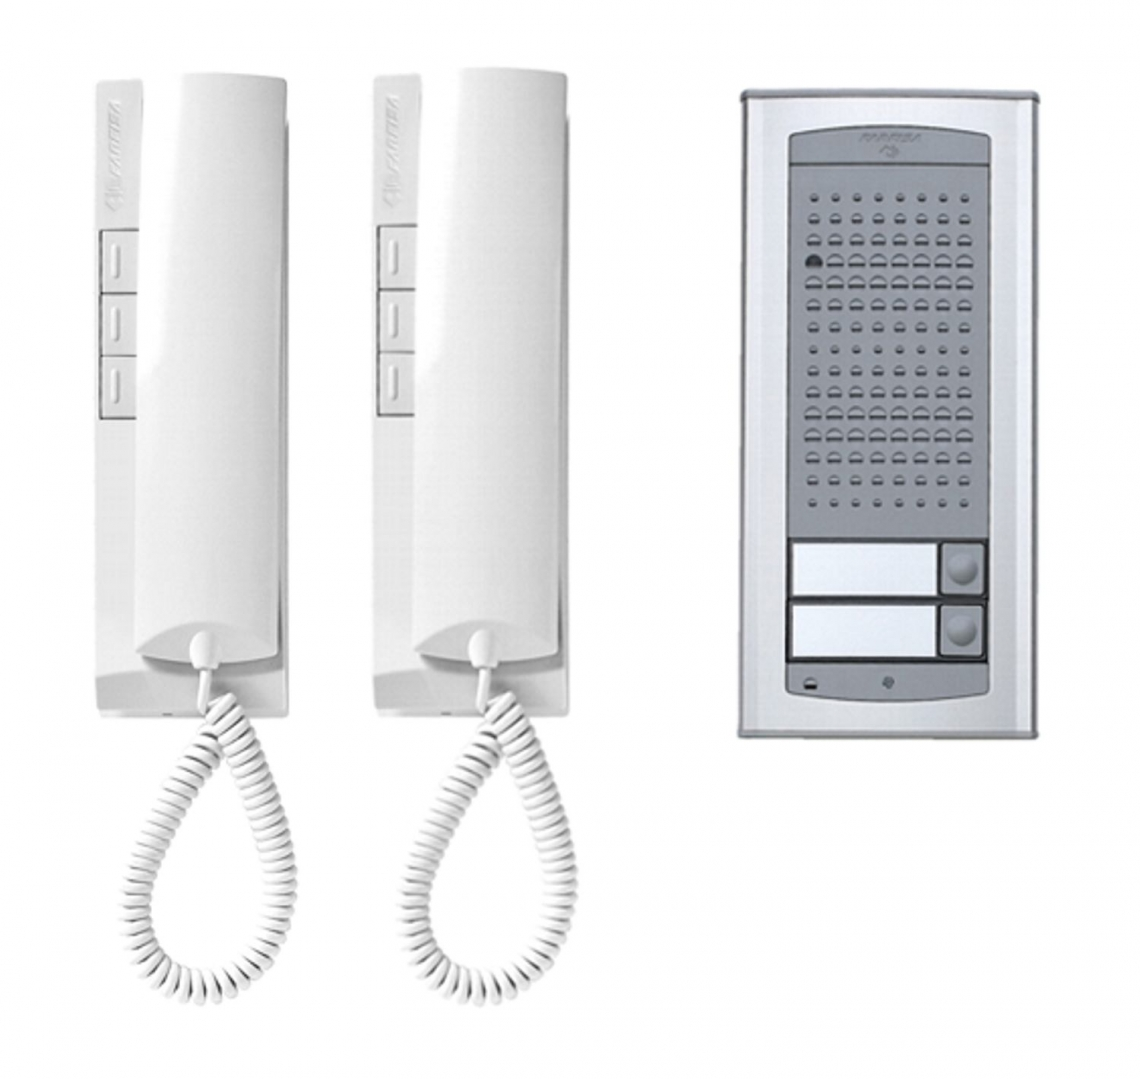 Intercom kit 2 way Duo Easy - 2AEX352LE